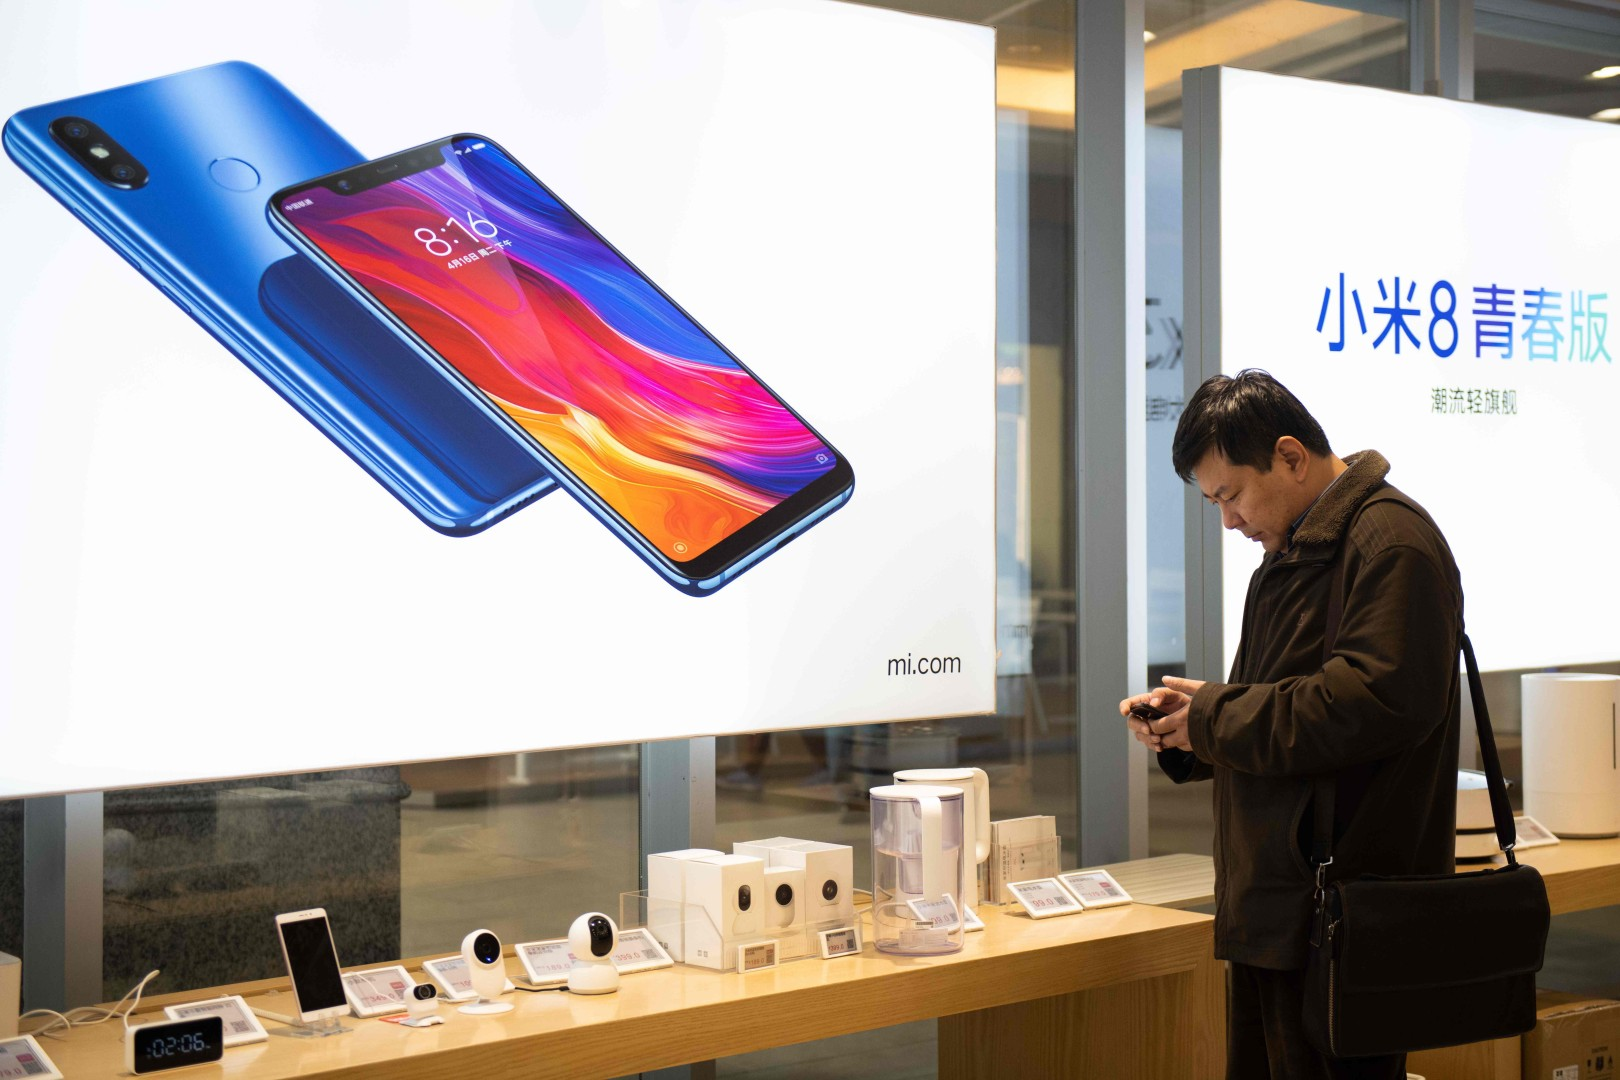 Investors fret about Xiaomi's game plan, sending shares